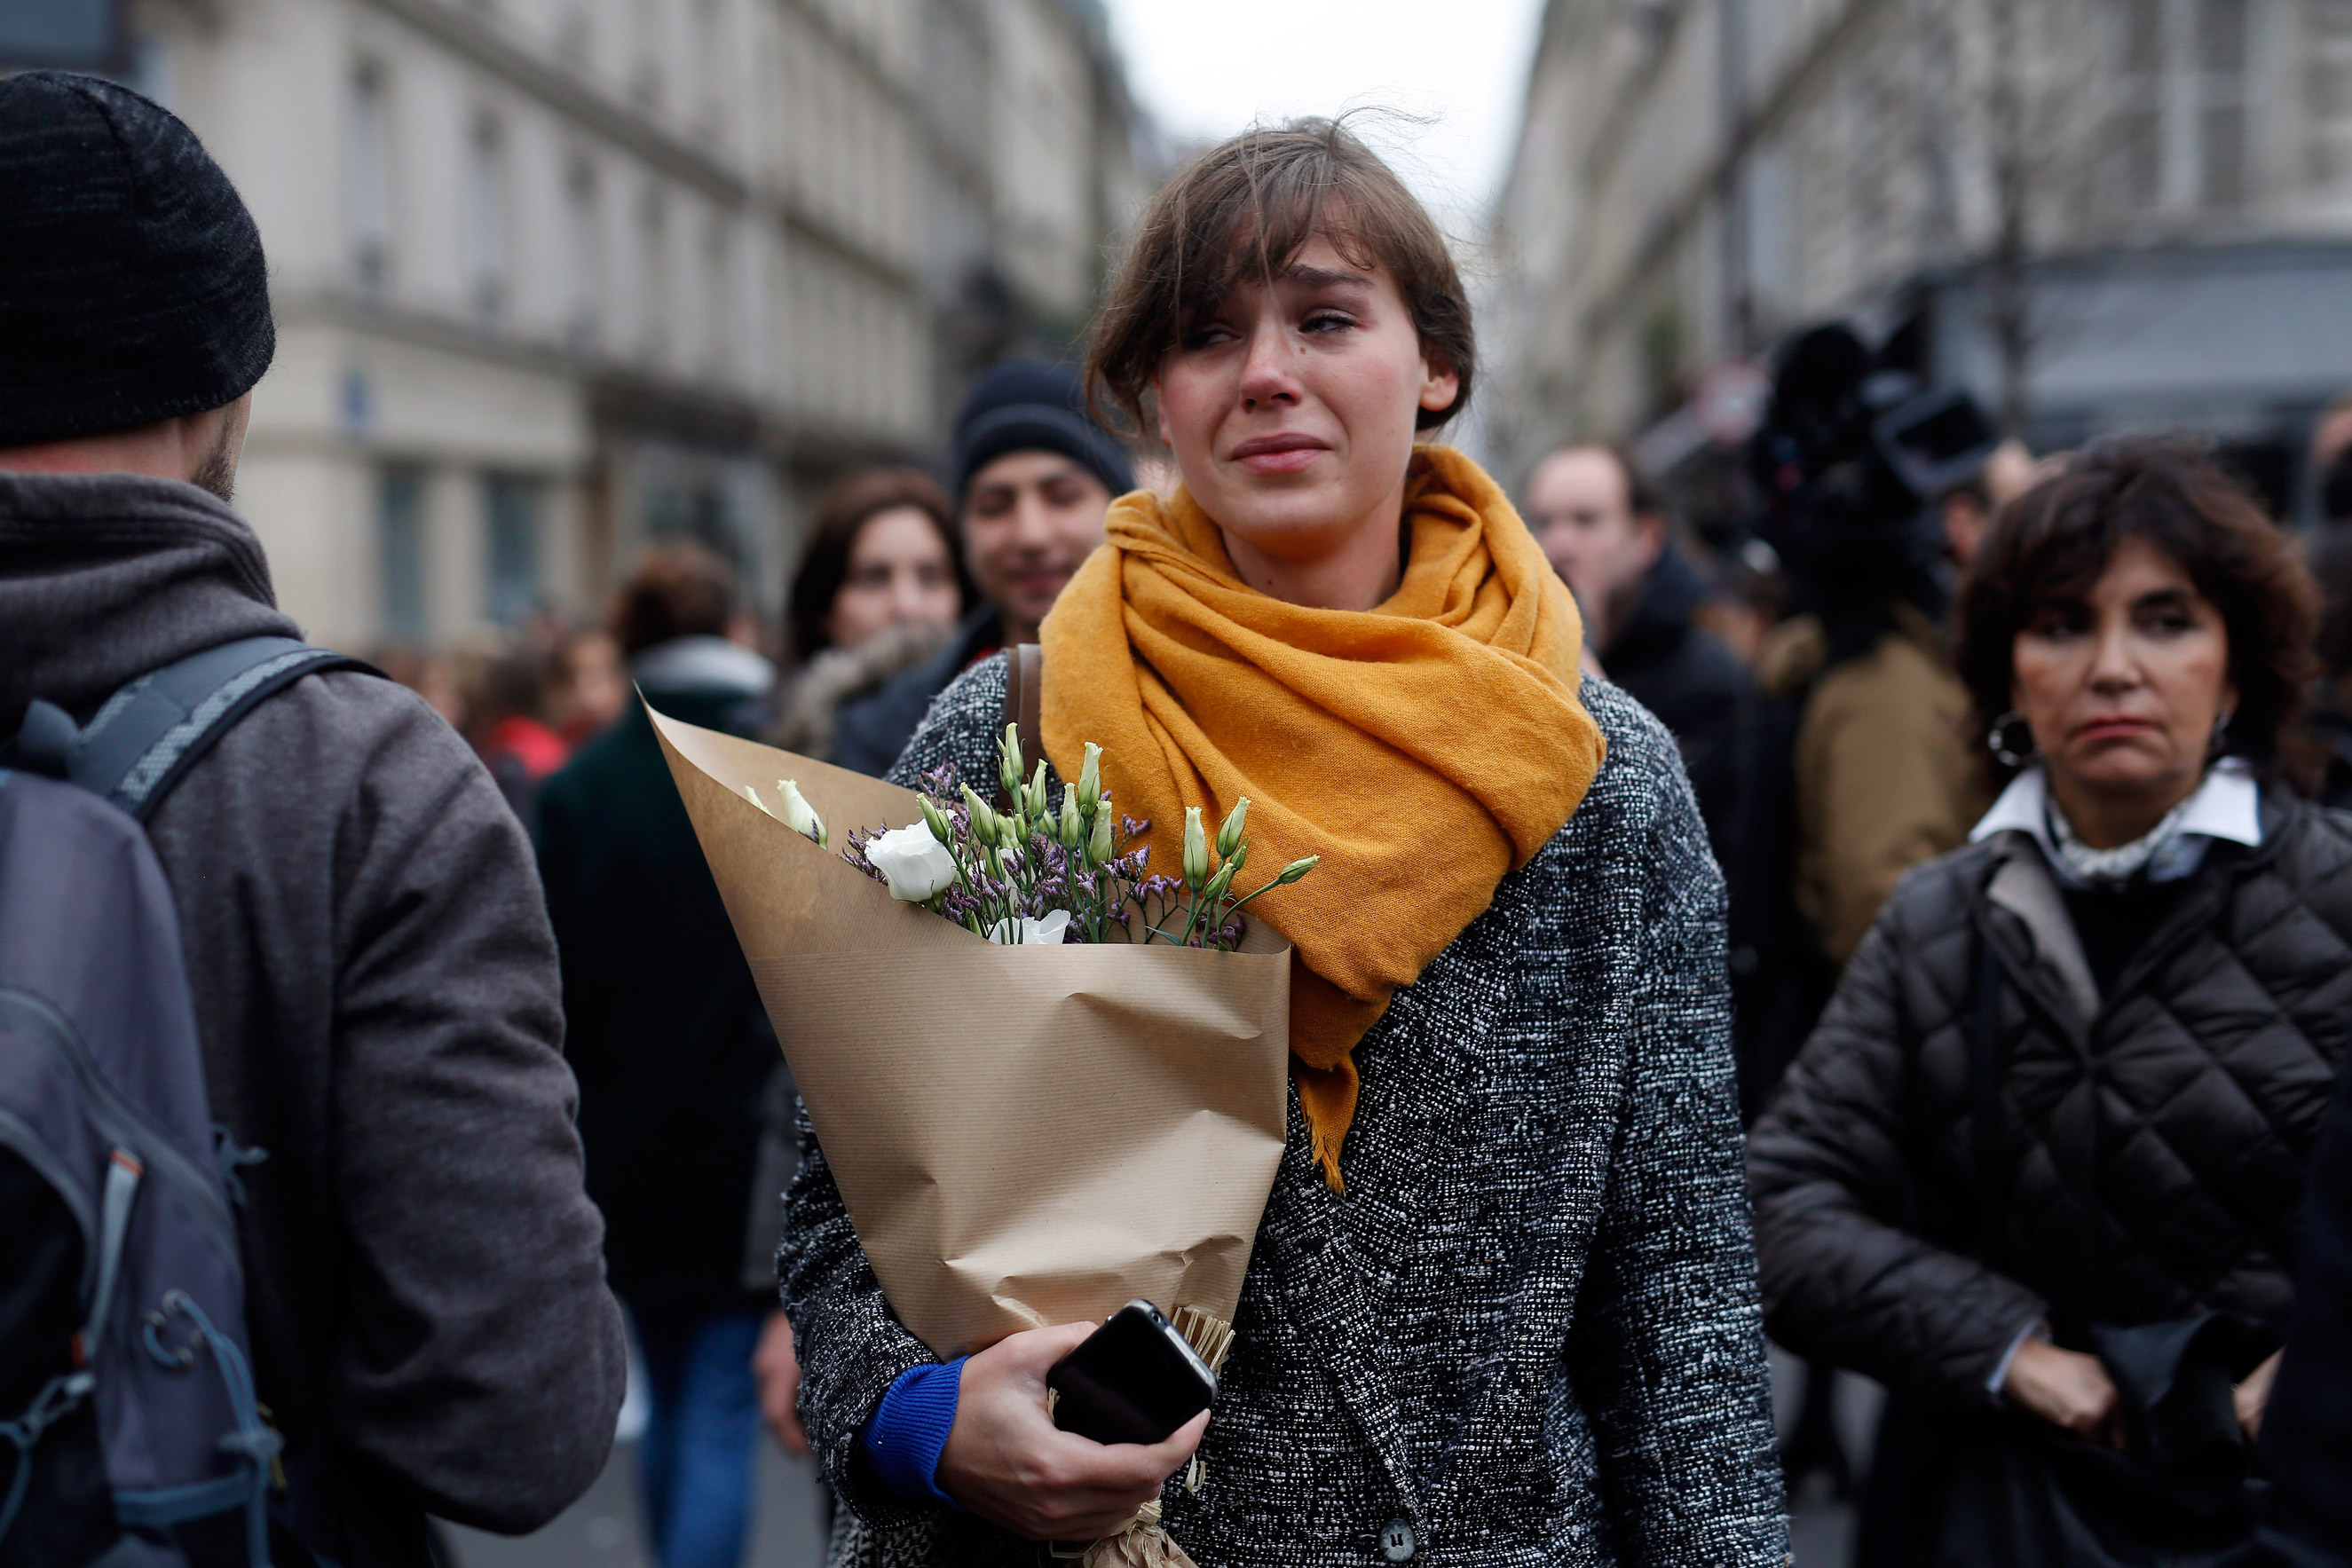 A woman carrying flowers cries in front of the Carillon cafe and the Petit Cambodge restaurant in Paris on Nov. 14, 2015.